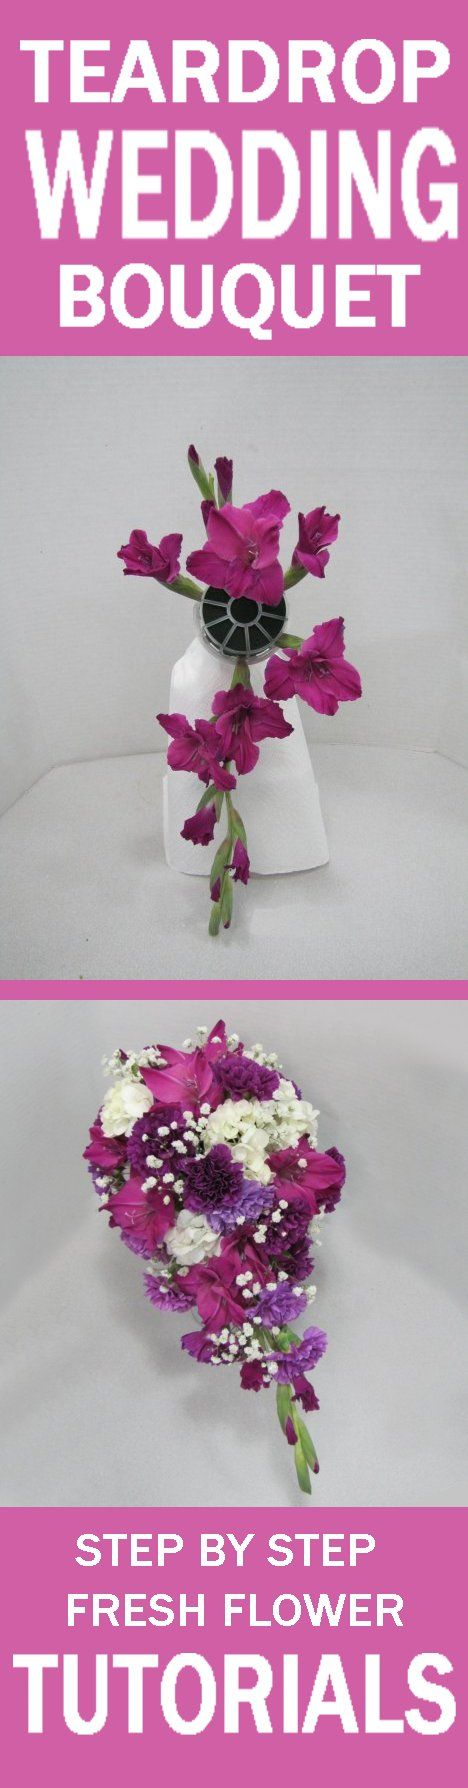 Best wedding flower arrangements florales arreglos florales y purple wedding flower bouquets easy free fresh flower tutorials learn how to make bridal bouquets solutioingenieria Gallery